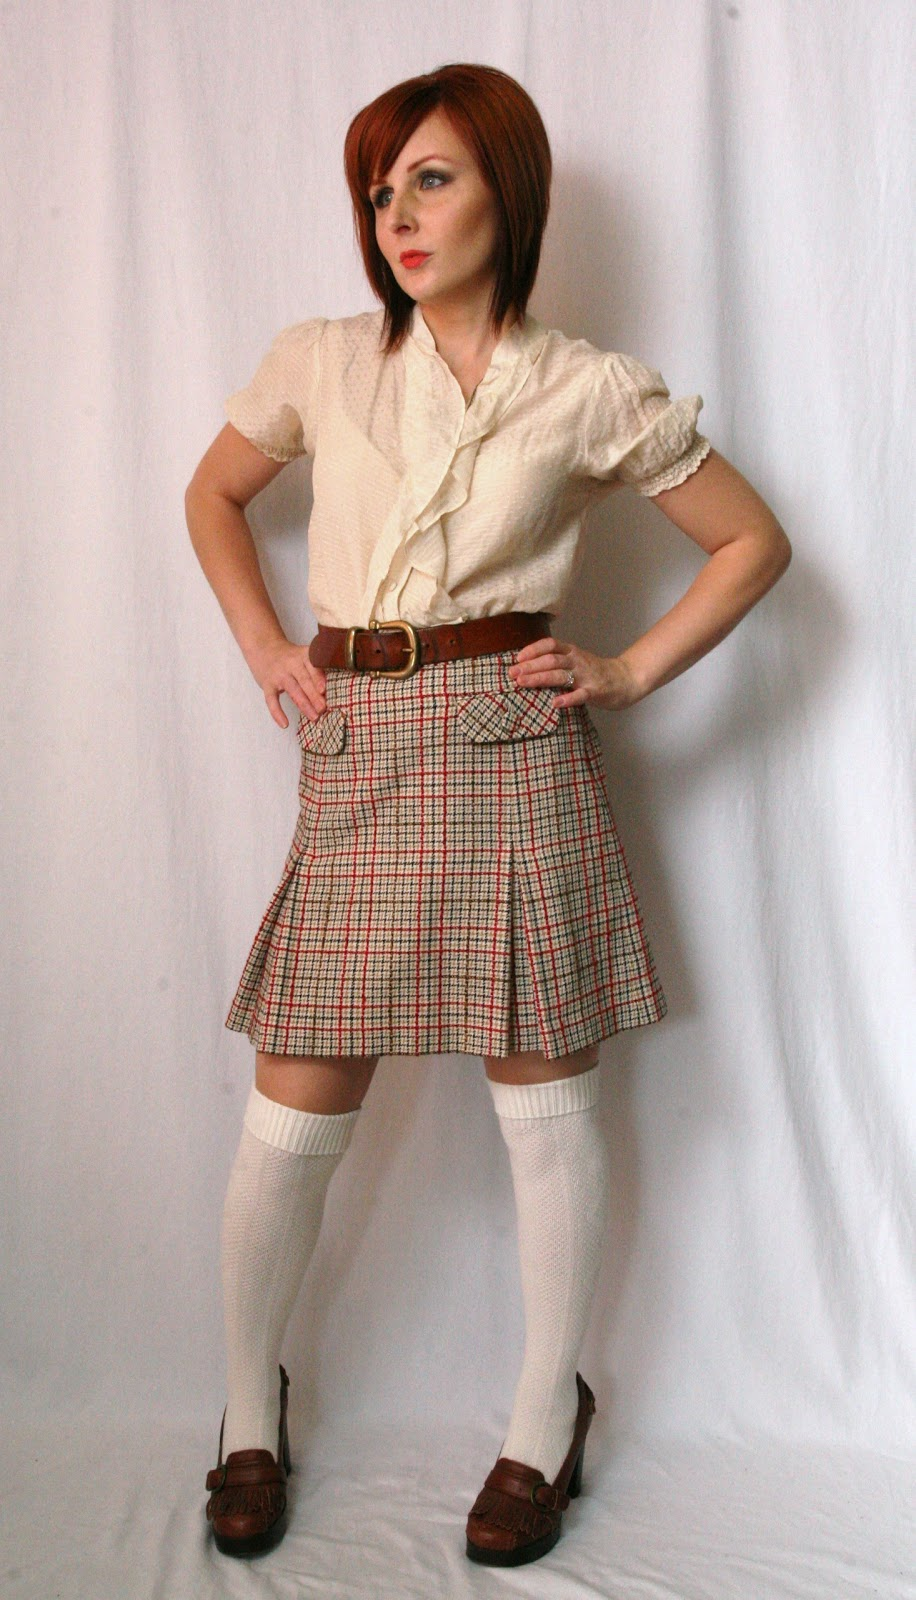 Thrift And Shout: Cute Outfit Of The Day: It's Plaid Skirt